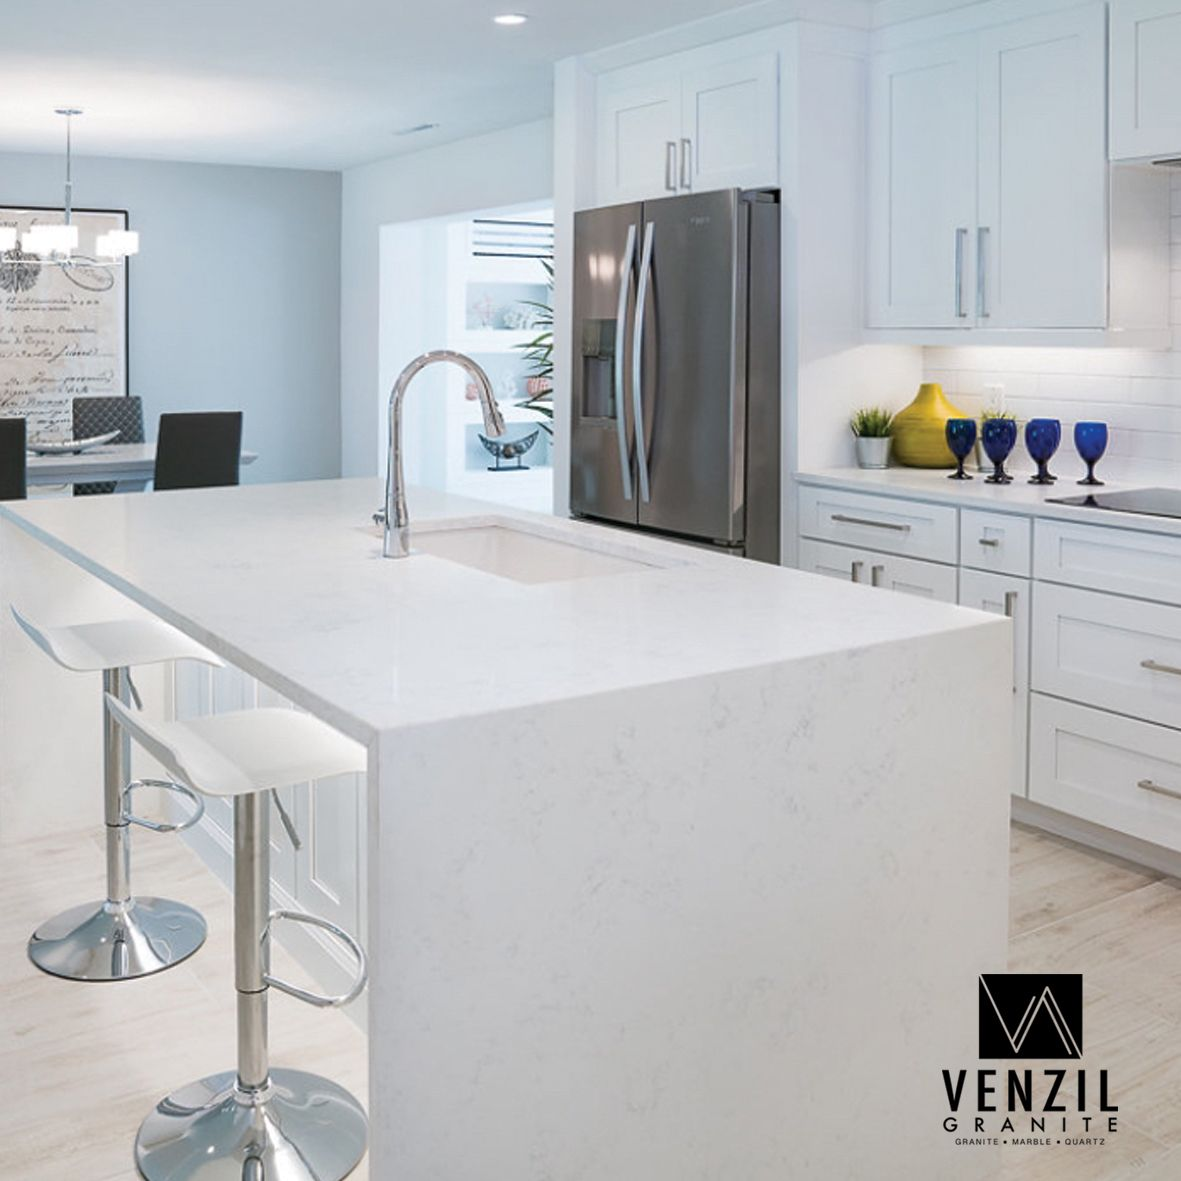 Carrara Thassos Quartz Modern Elegant Waterfall Kitchen Island And Counter Tops Made By Venzil Granite Waterfall Island Kitchen Kitchen Marble Countertops